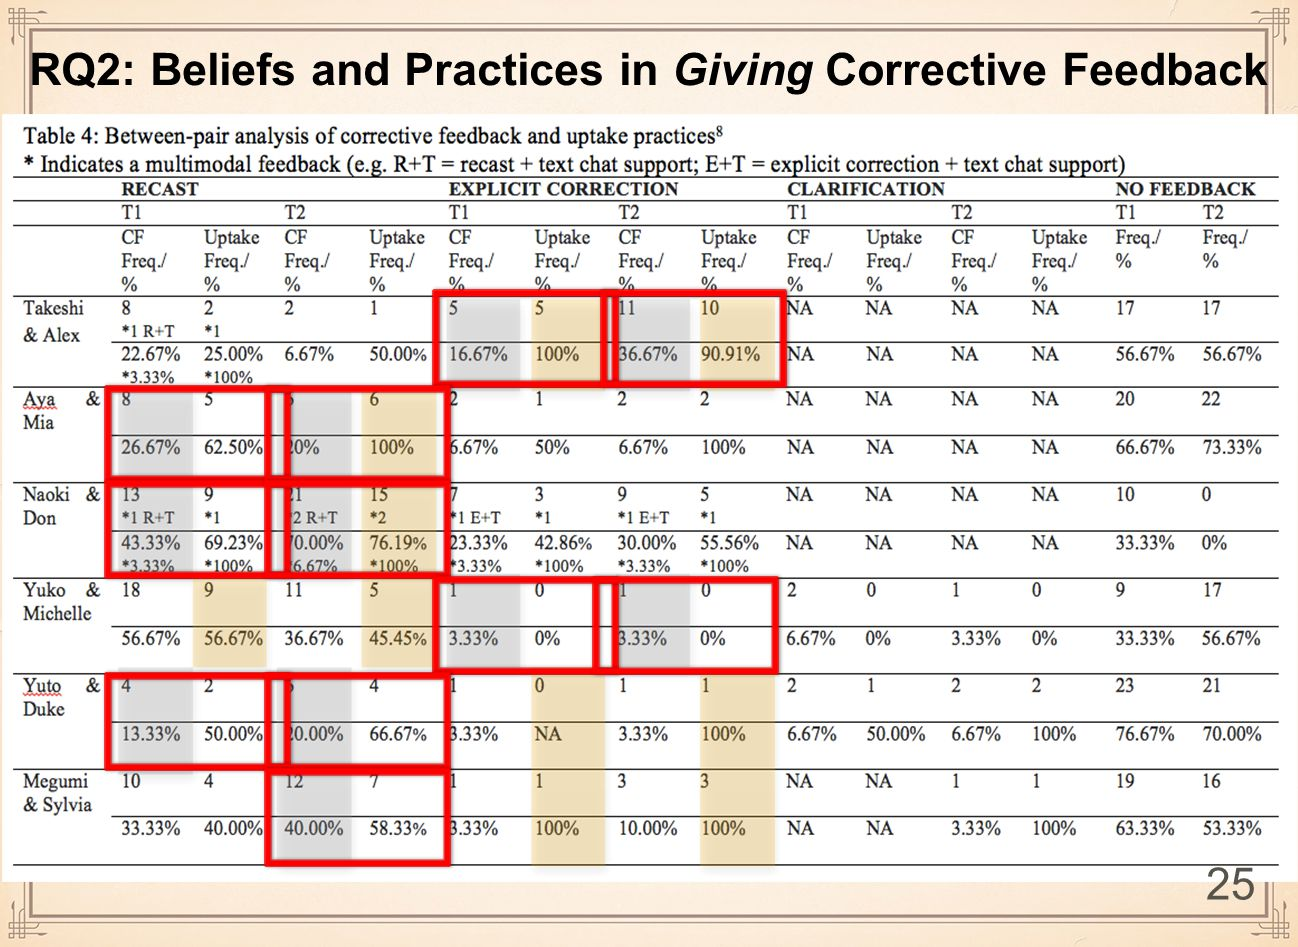 RQ2: Beliefs and Practices in Giving Corrective Feedback 25